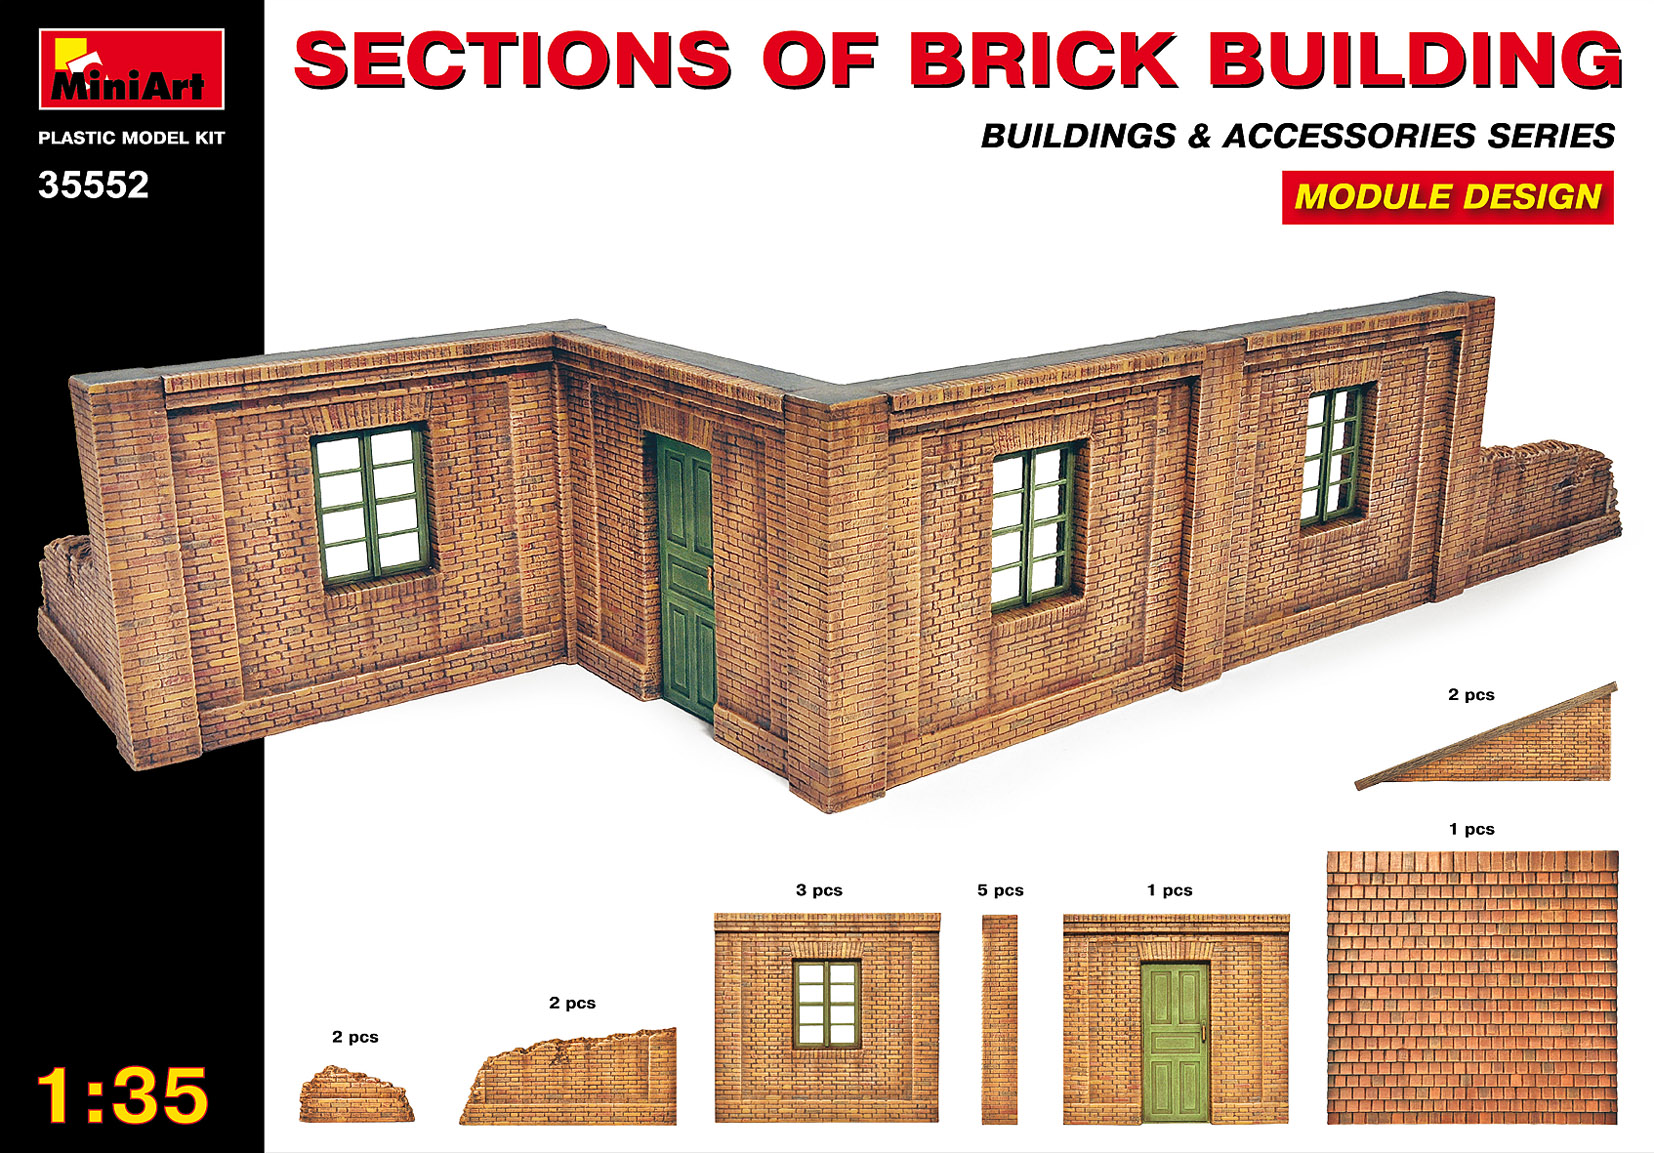 35552 SECTIONS OF BRICK BUILDINGS